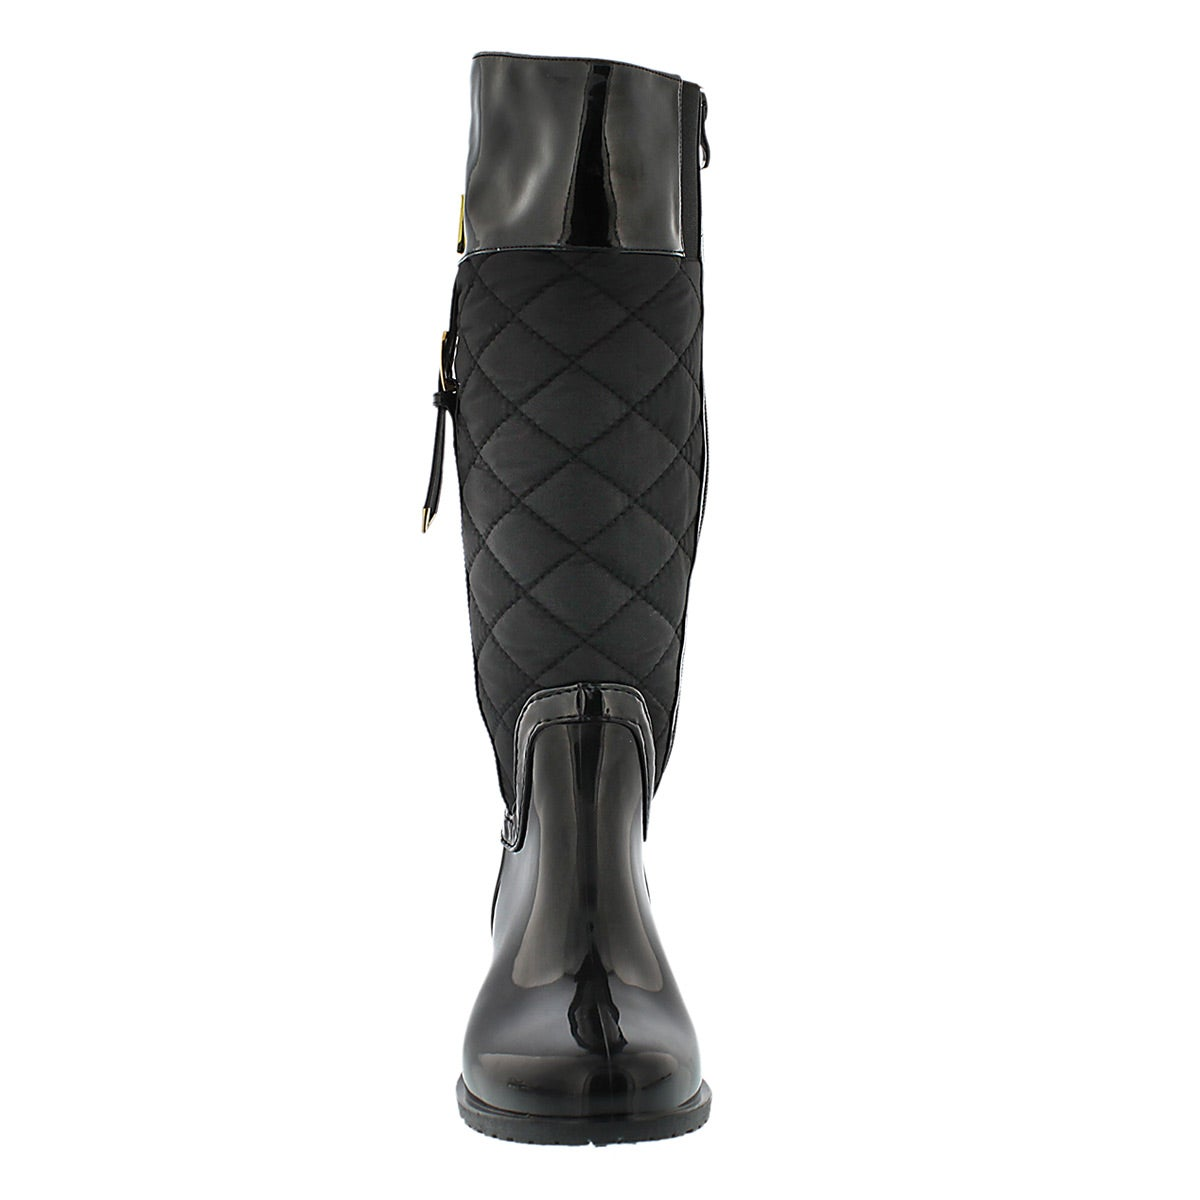 Lds Coventry Quilted blk tall rain boot